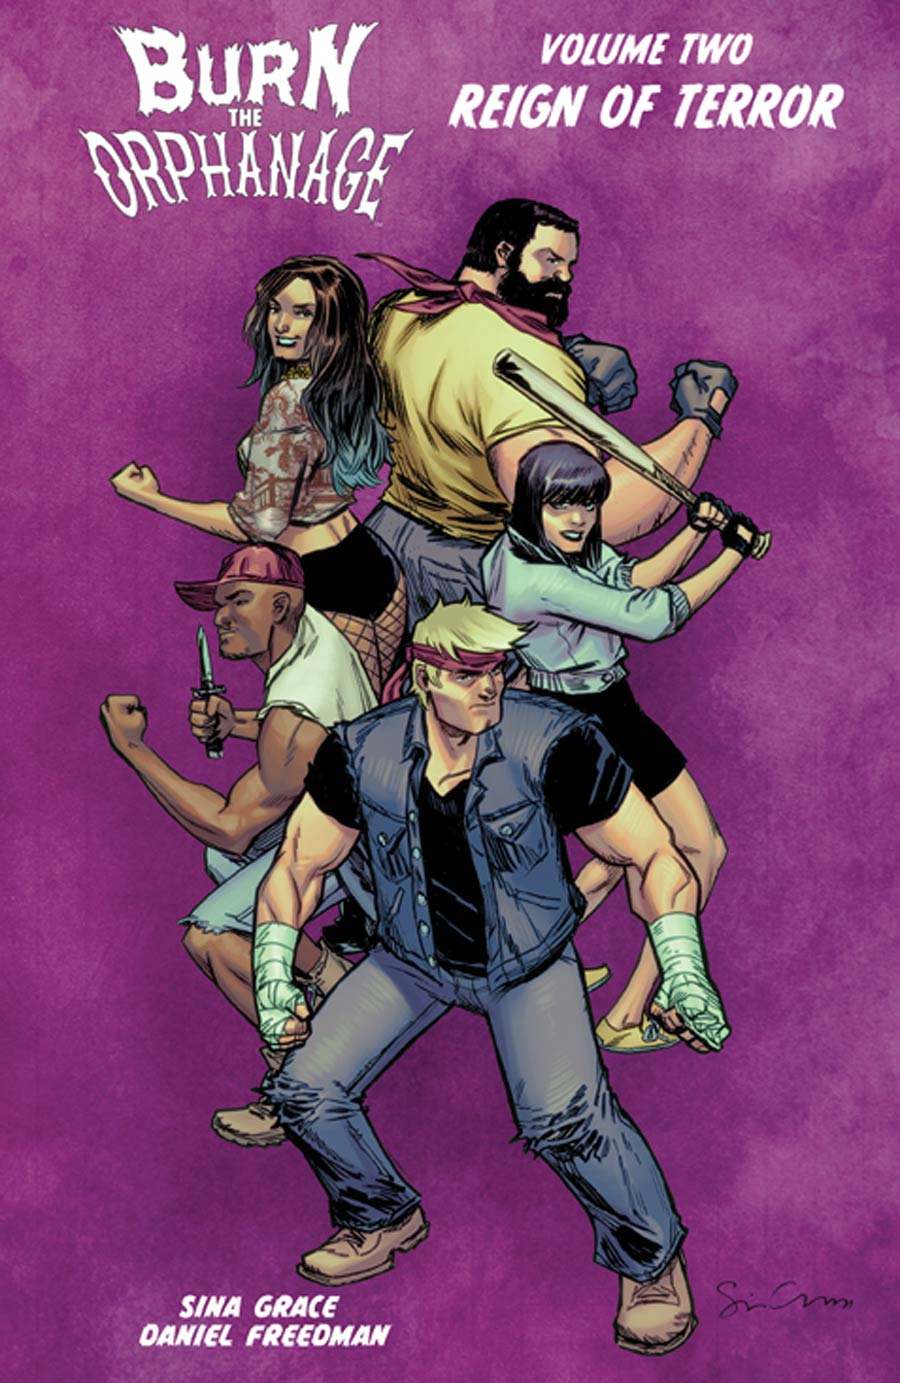 Burn The Orphanage Vol 2 Reign Of Terror TP